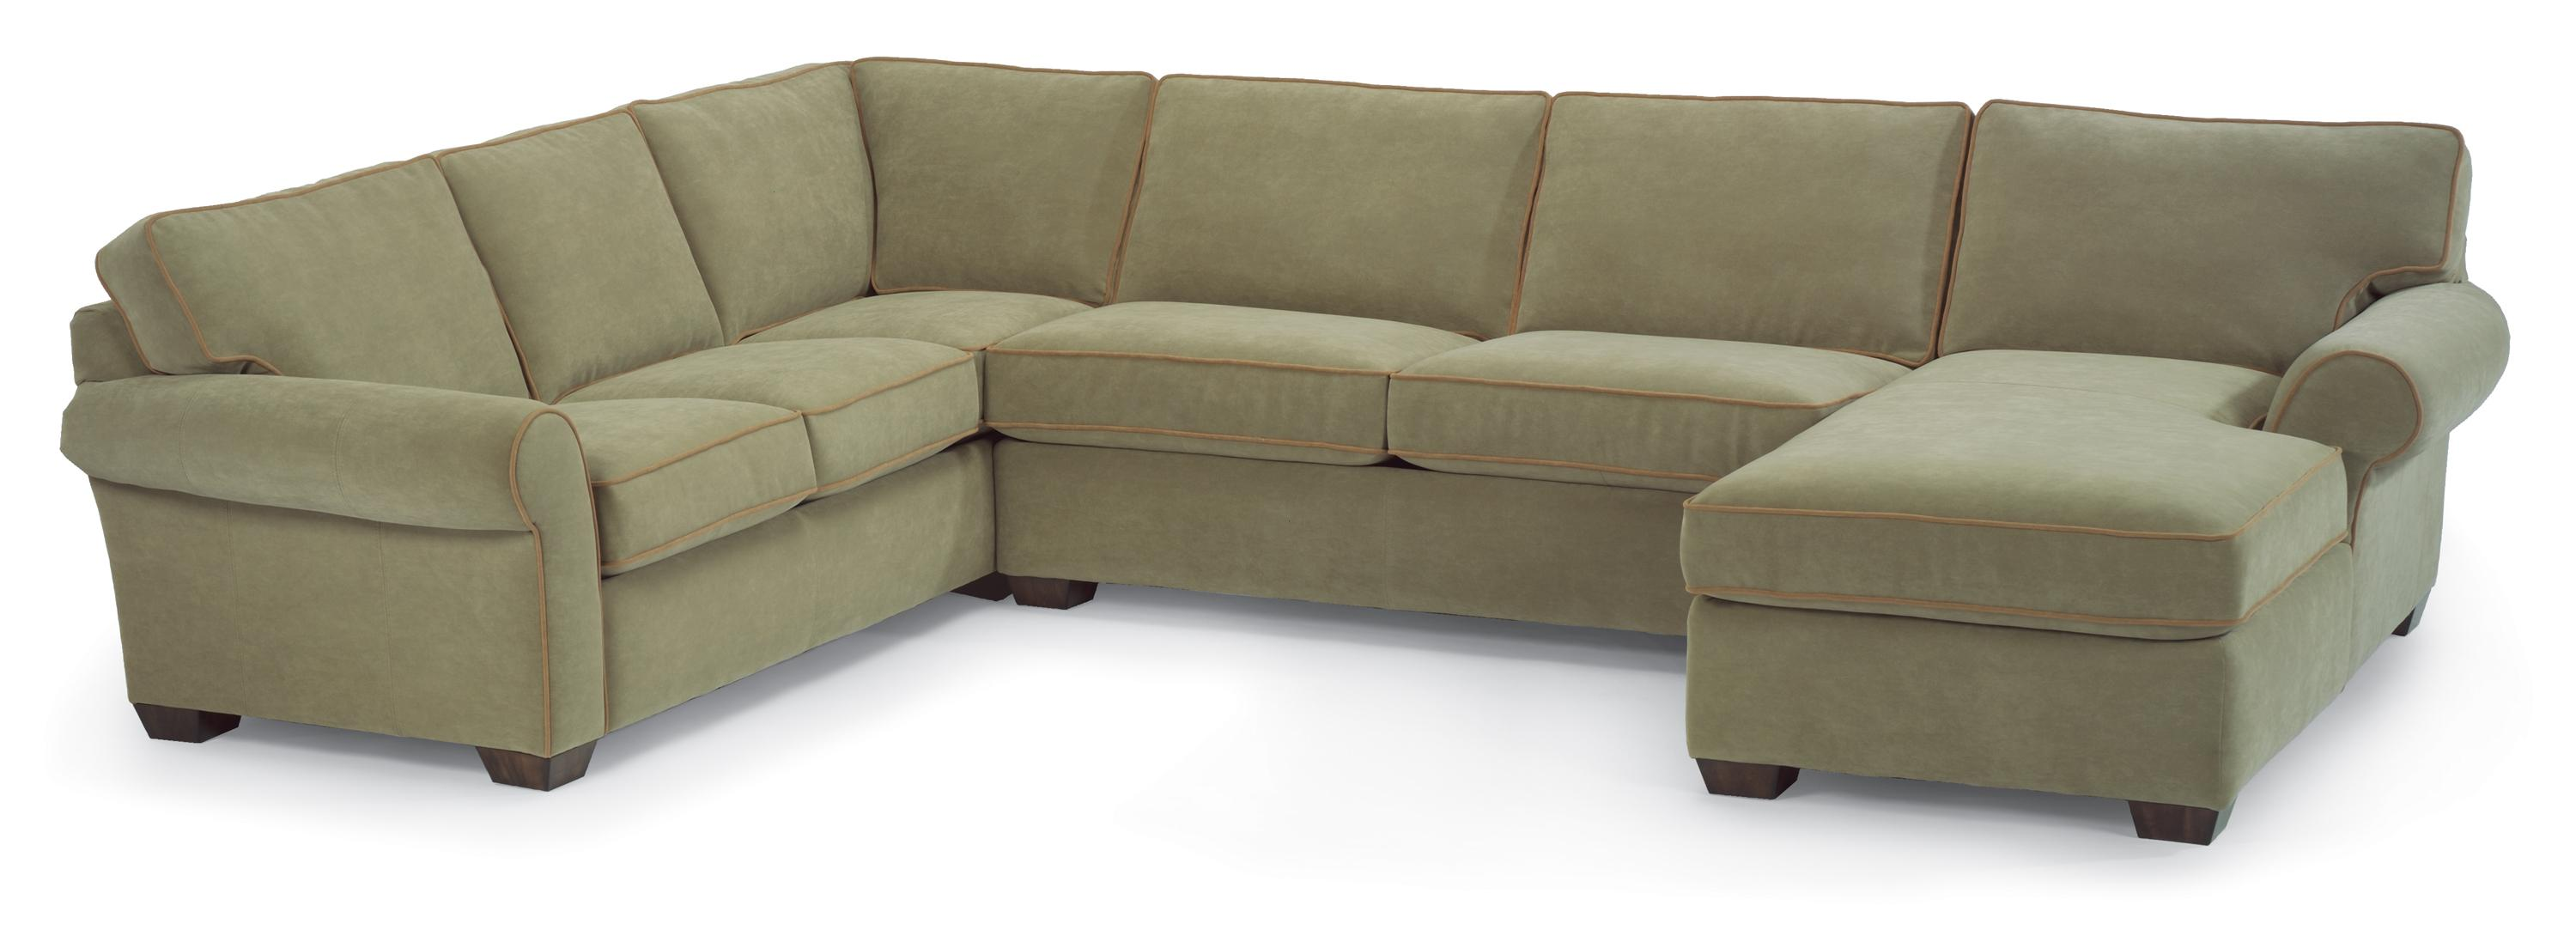 Flexsteel vail stationary sectional sofa with right side for Sectional sofa with right side chaise